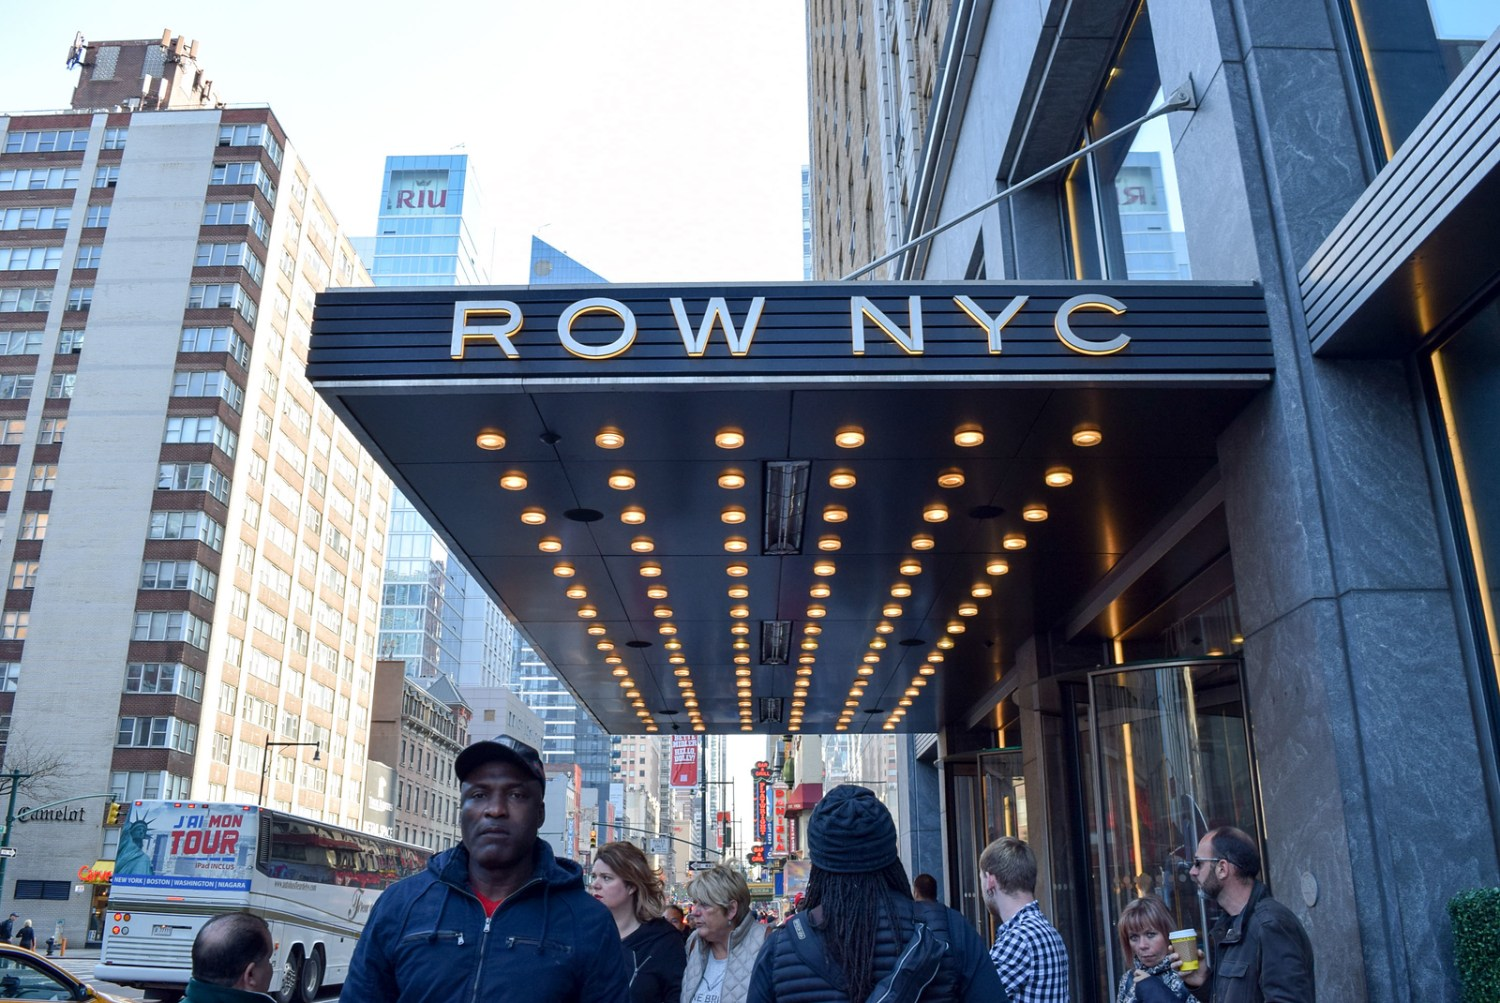 Row NYC Hotel - New York City | Oyster.com Review & Photos